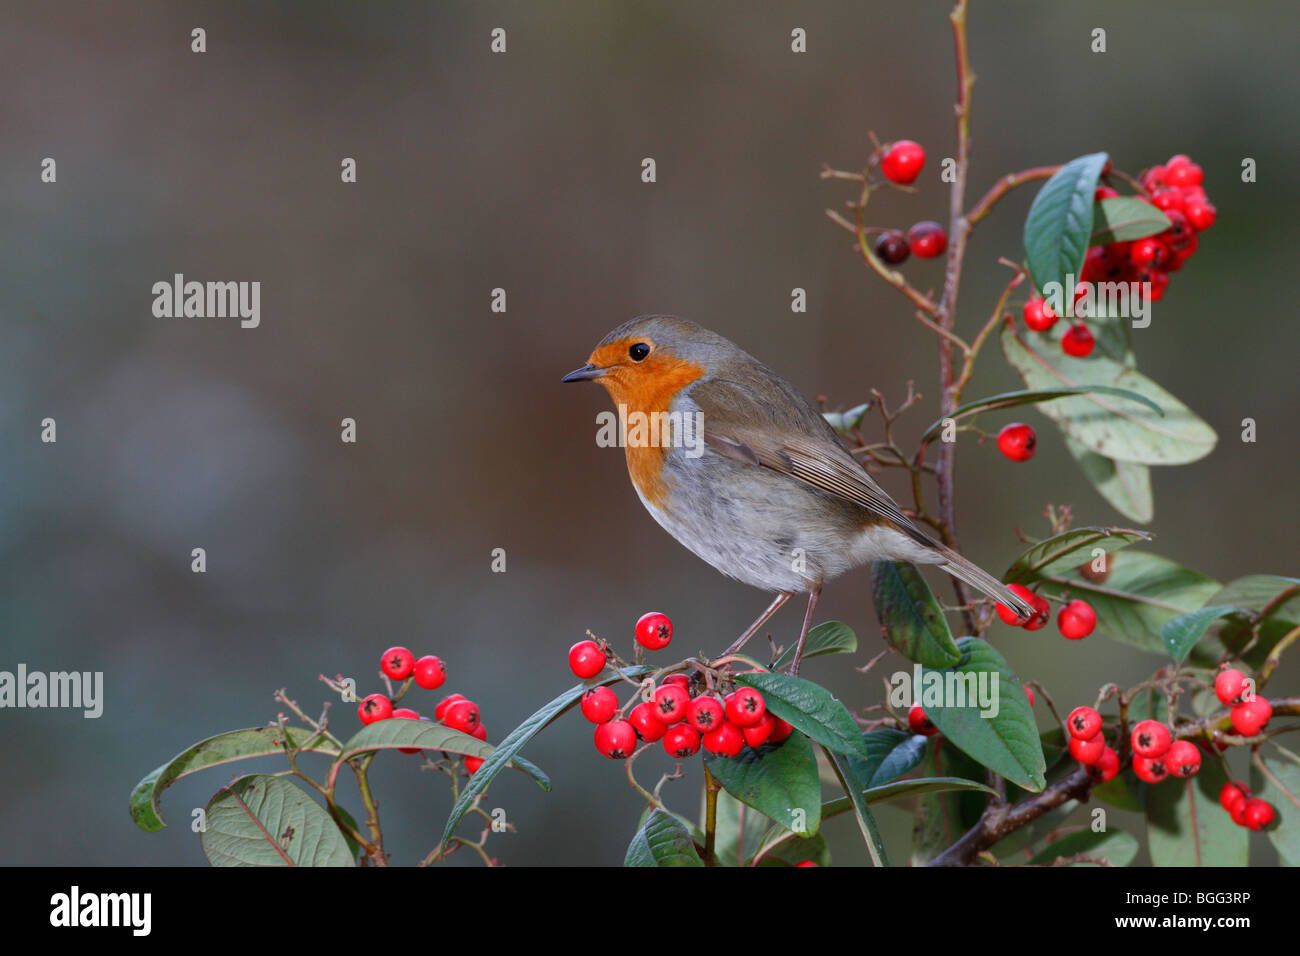 Robin Erithacus rubecula on berry's - Stock Image